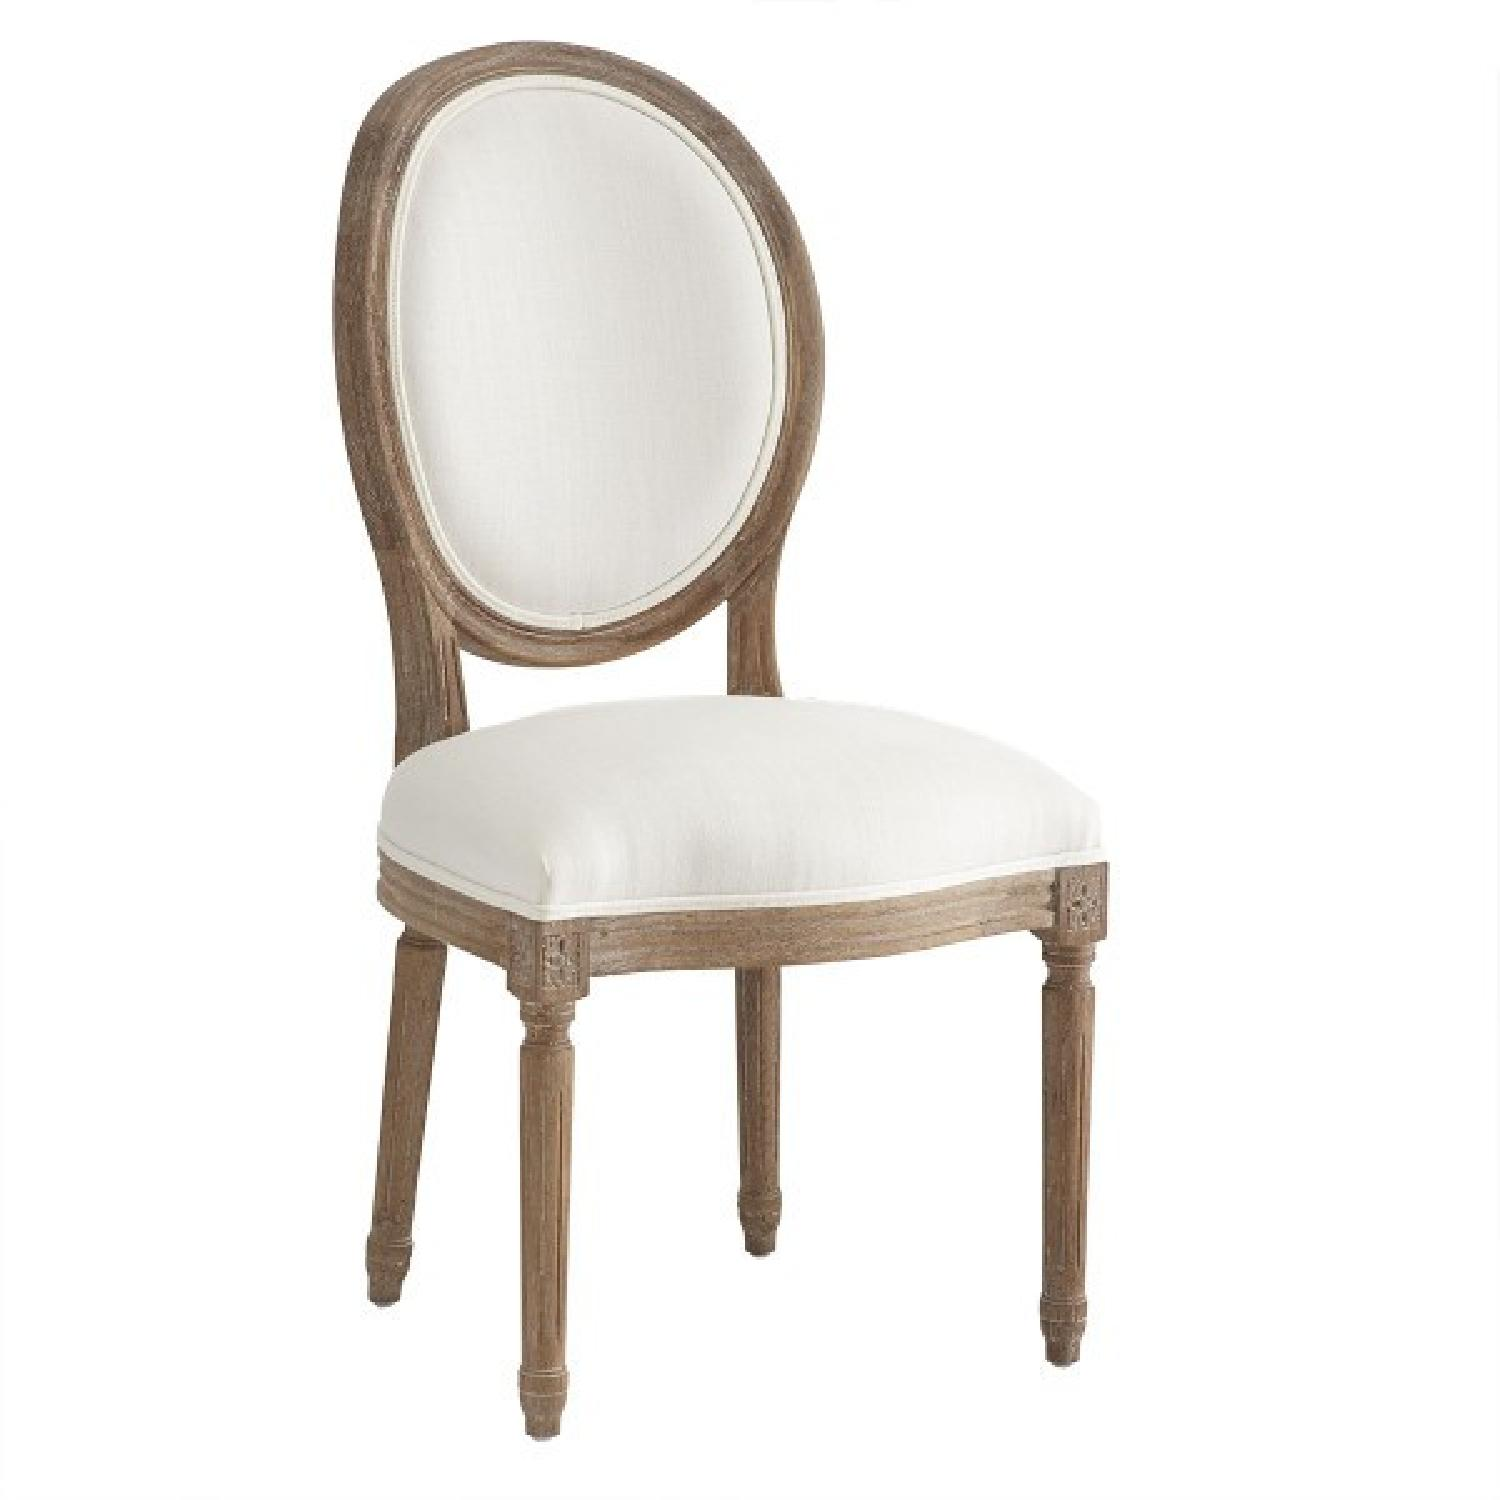 Wisteria Louis XVI Dining Chairs - image-6